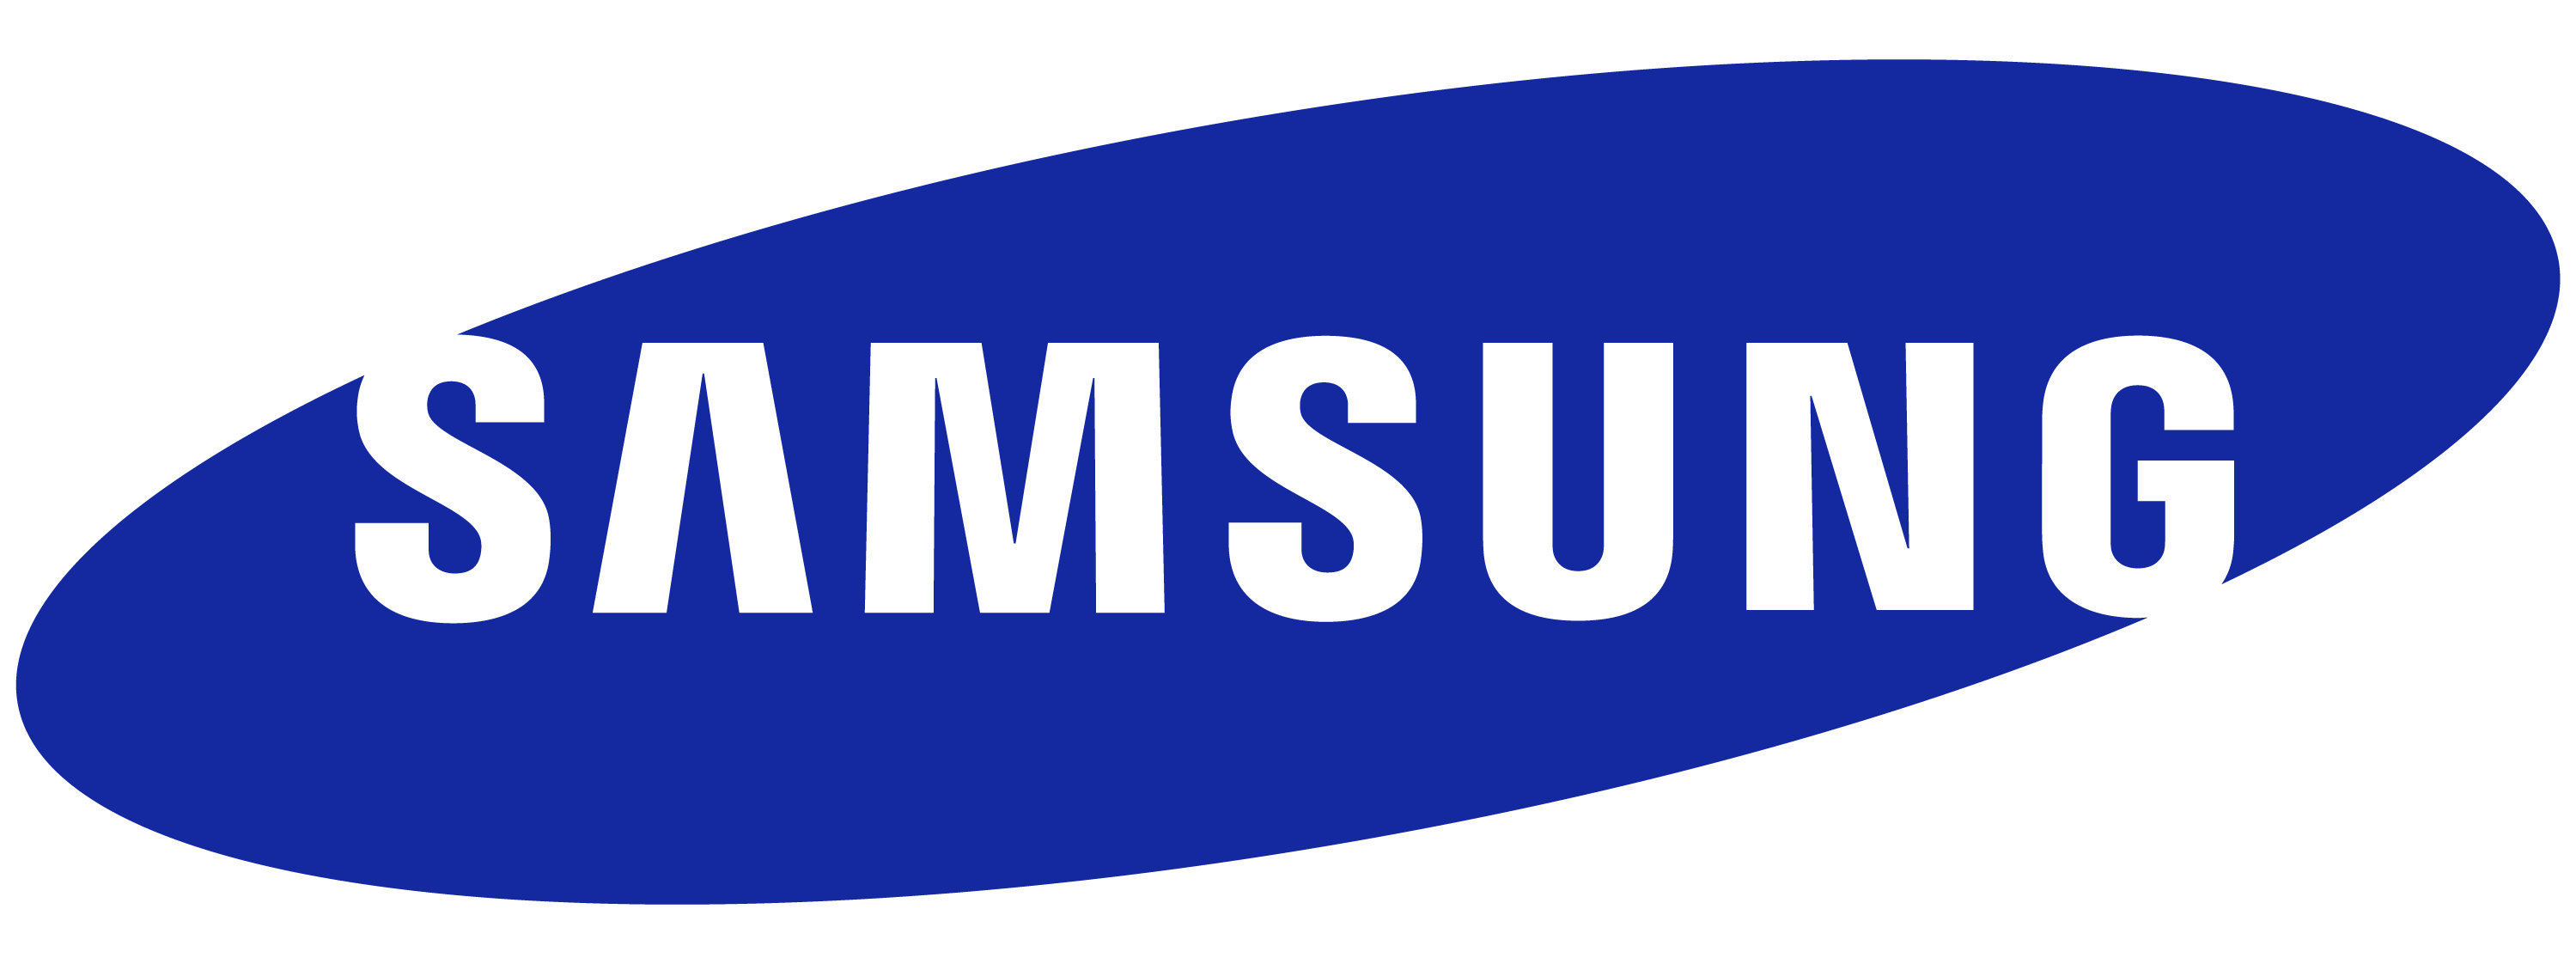 Samsung mobile logo clipart graphic royalty free stock Download Samsung Logo PNG - Free Transparent PNG Images ... graphic royalty free stock